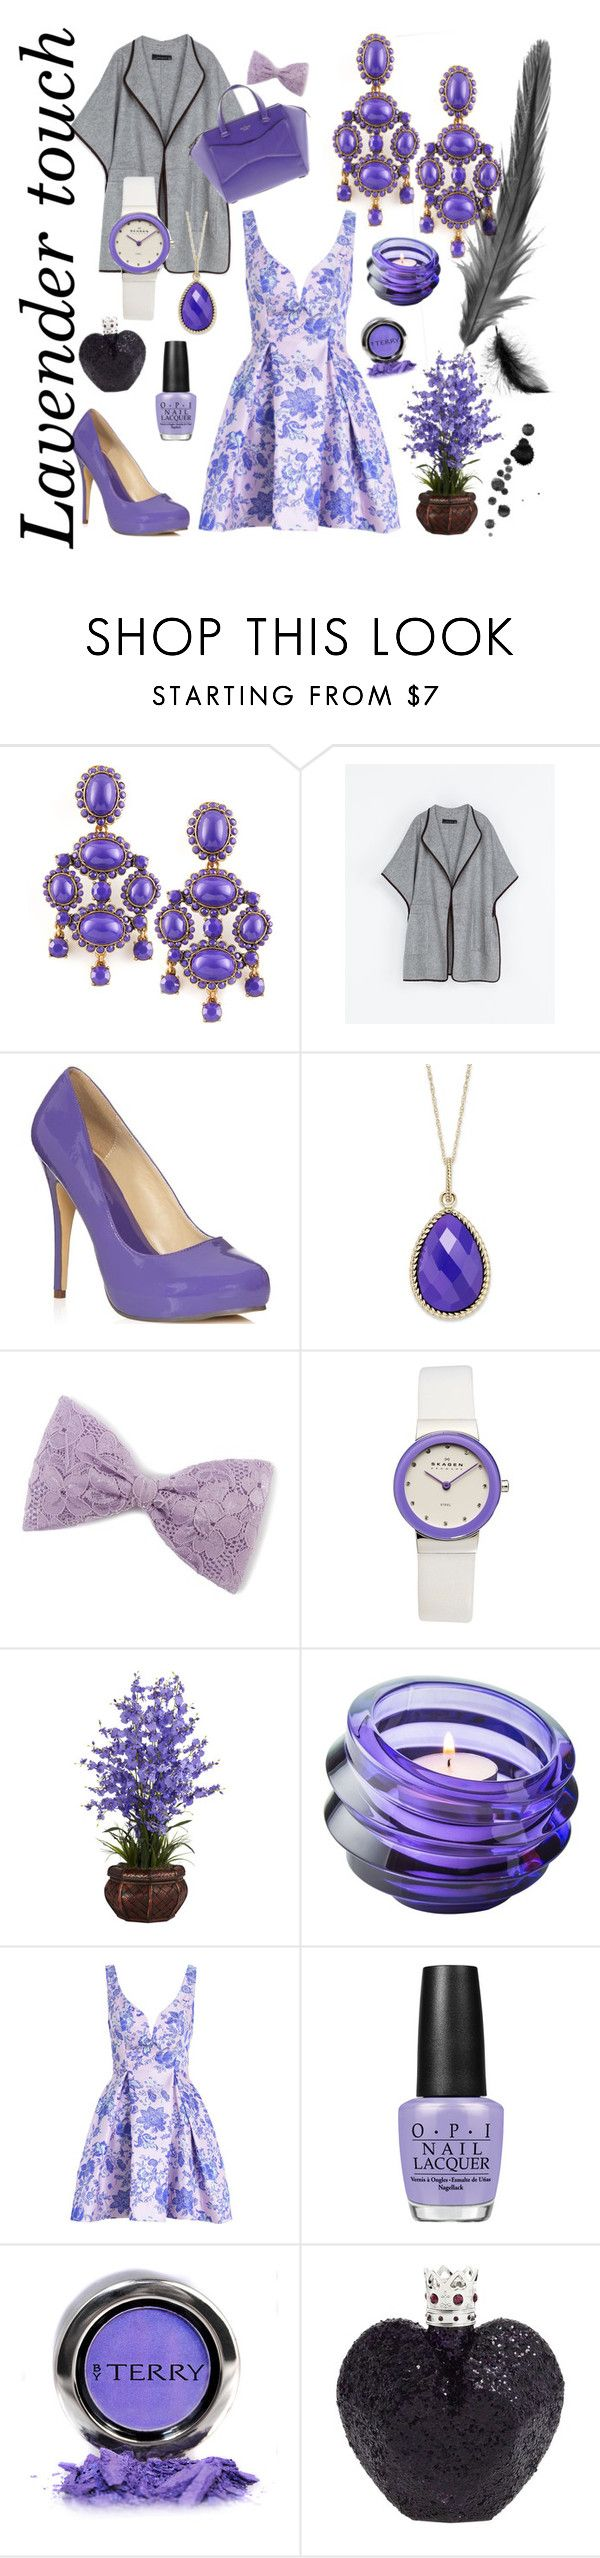 """""""Lavender Touch"""" by stylebycharlene on Polyvore featuring Oscar de la Renta, Zara, Kate Spade, JustFabulous, Skagen, Nearly Natural, Orrefors, OPI, By Terry and Vera Wang"""